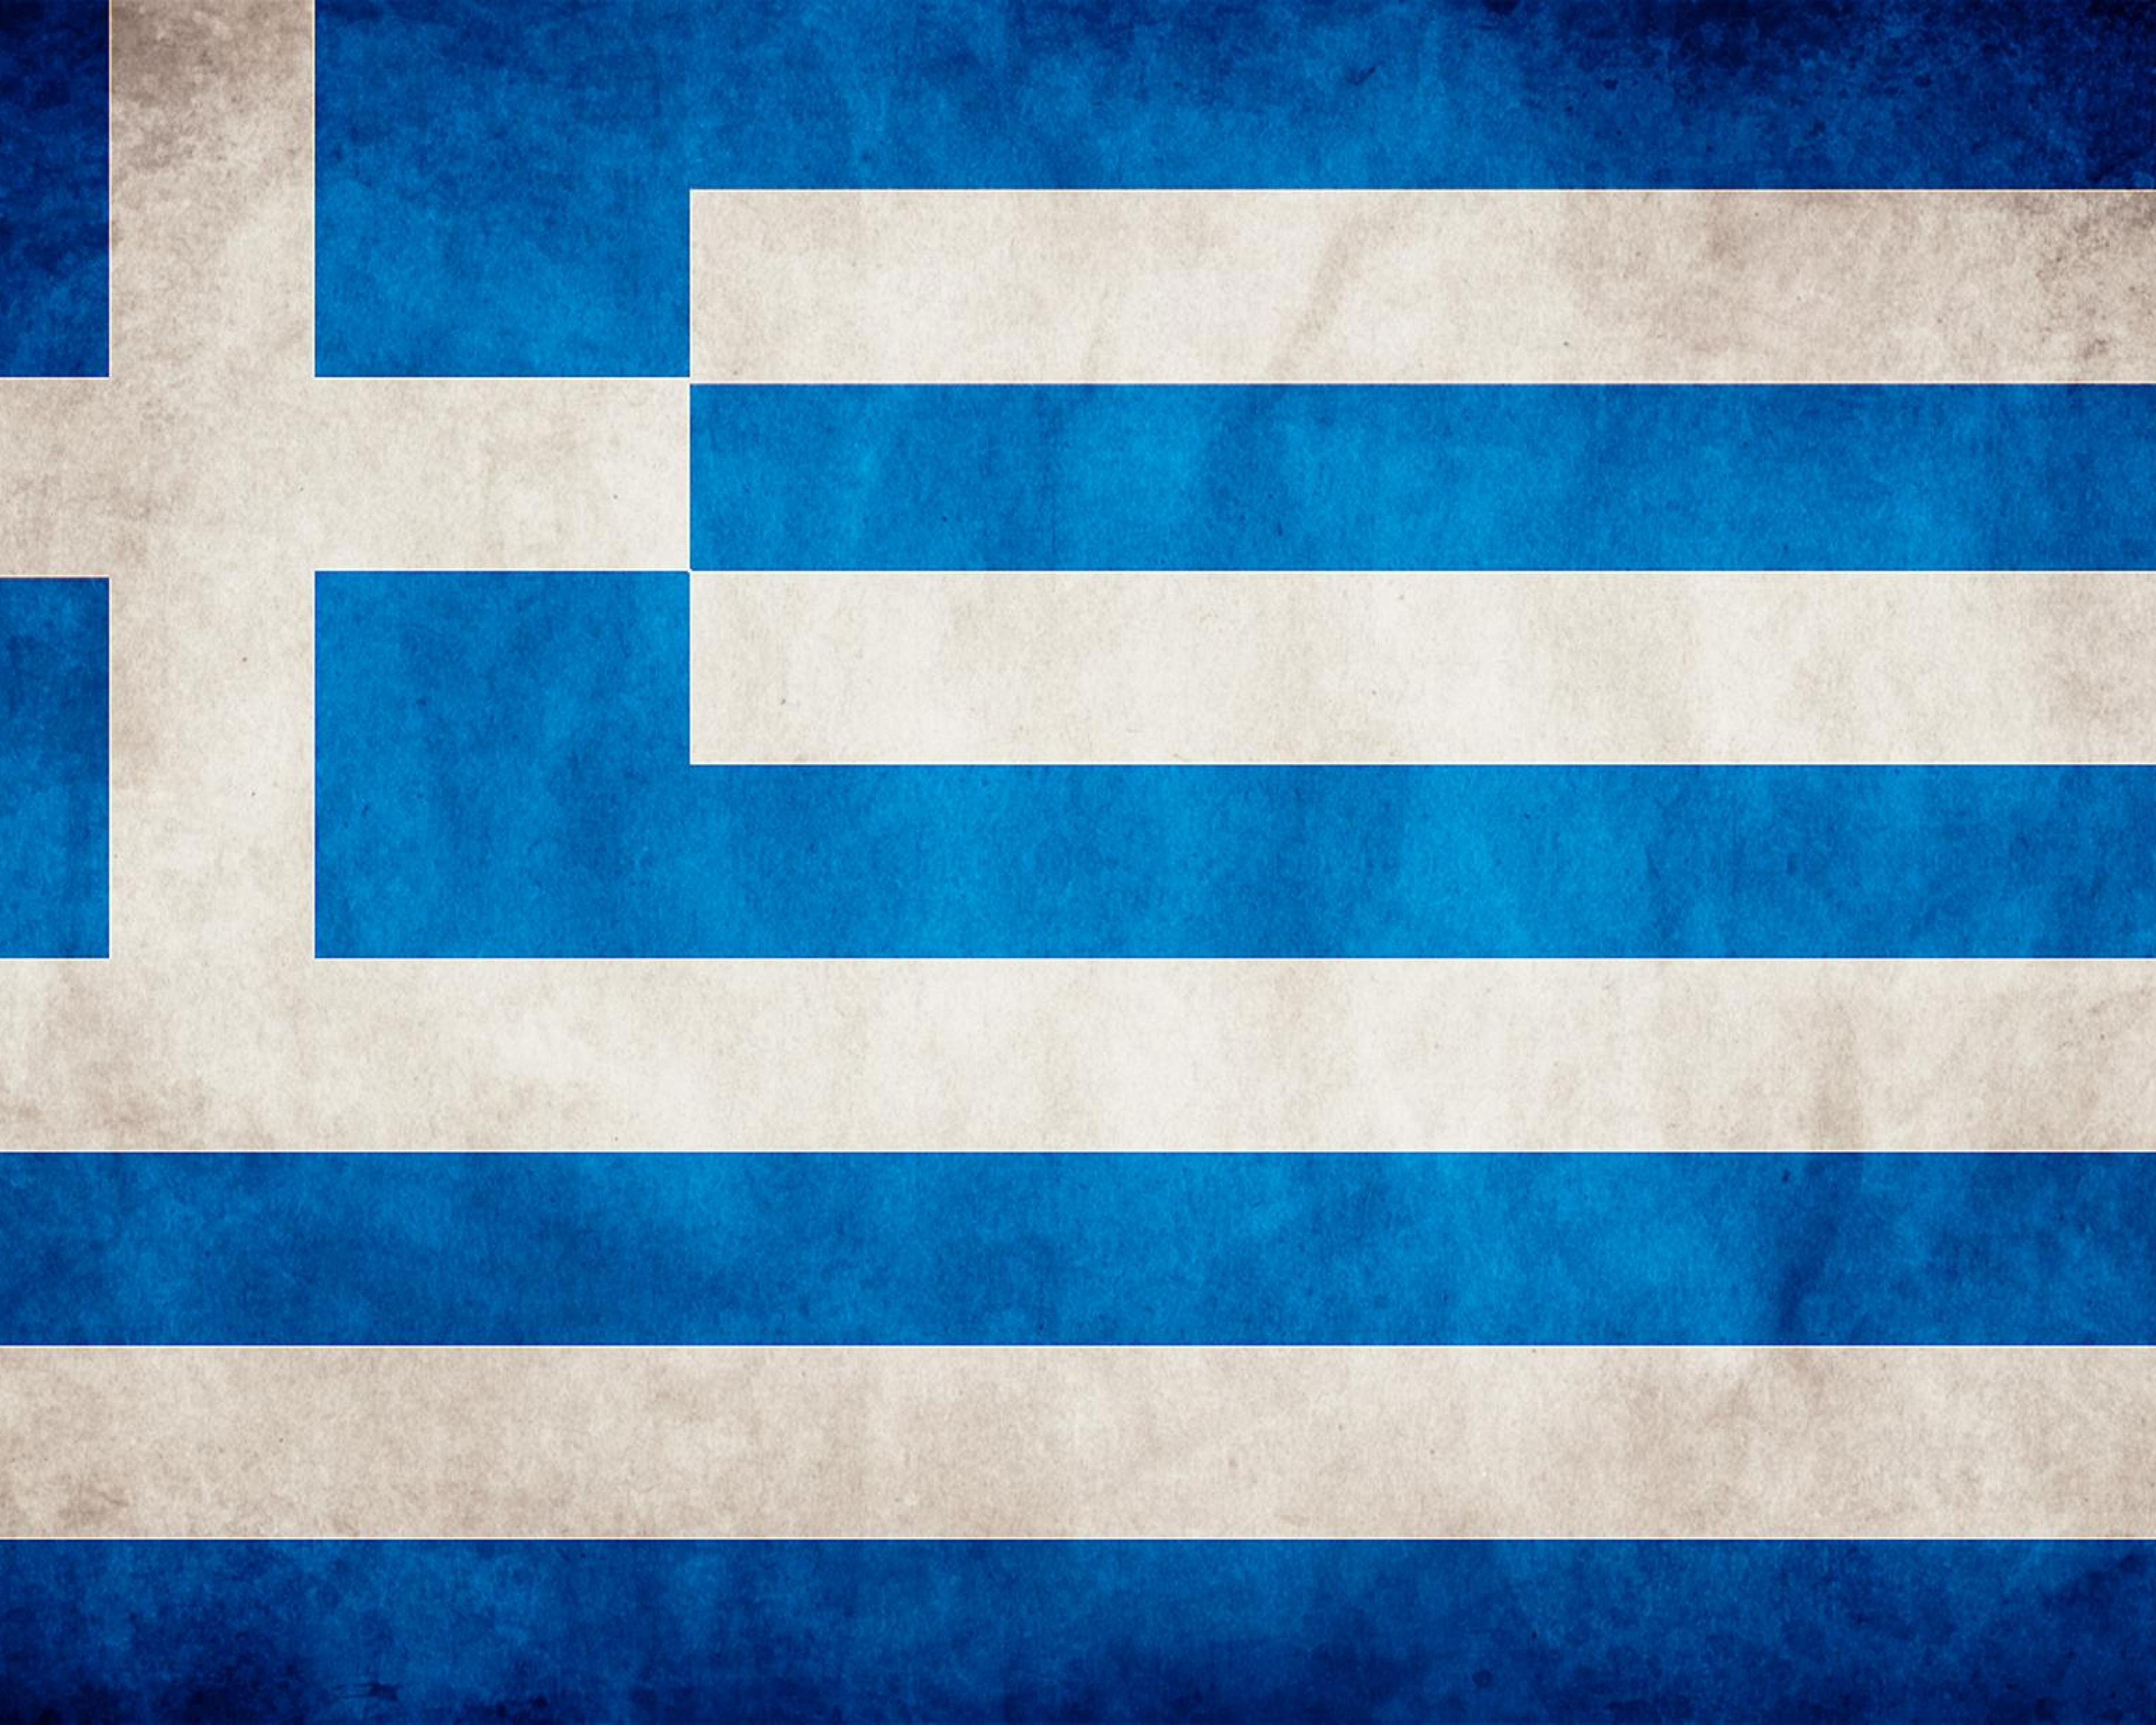 Greek Flag Greece HD Wallpapers Desktop Backgrounds 3750x3000